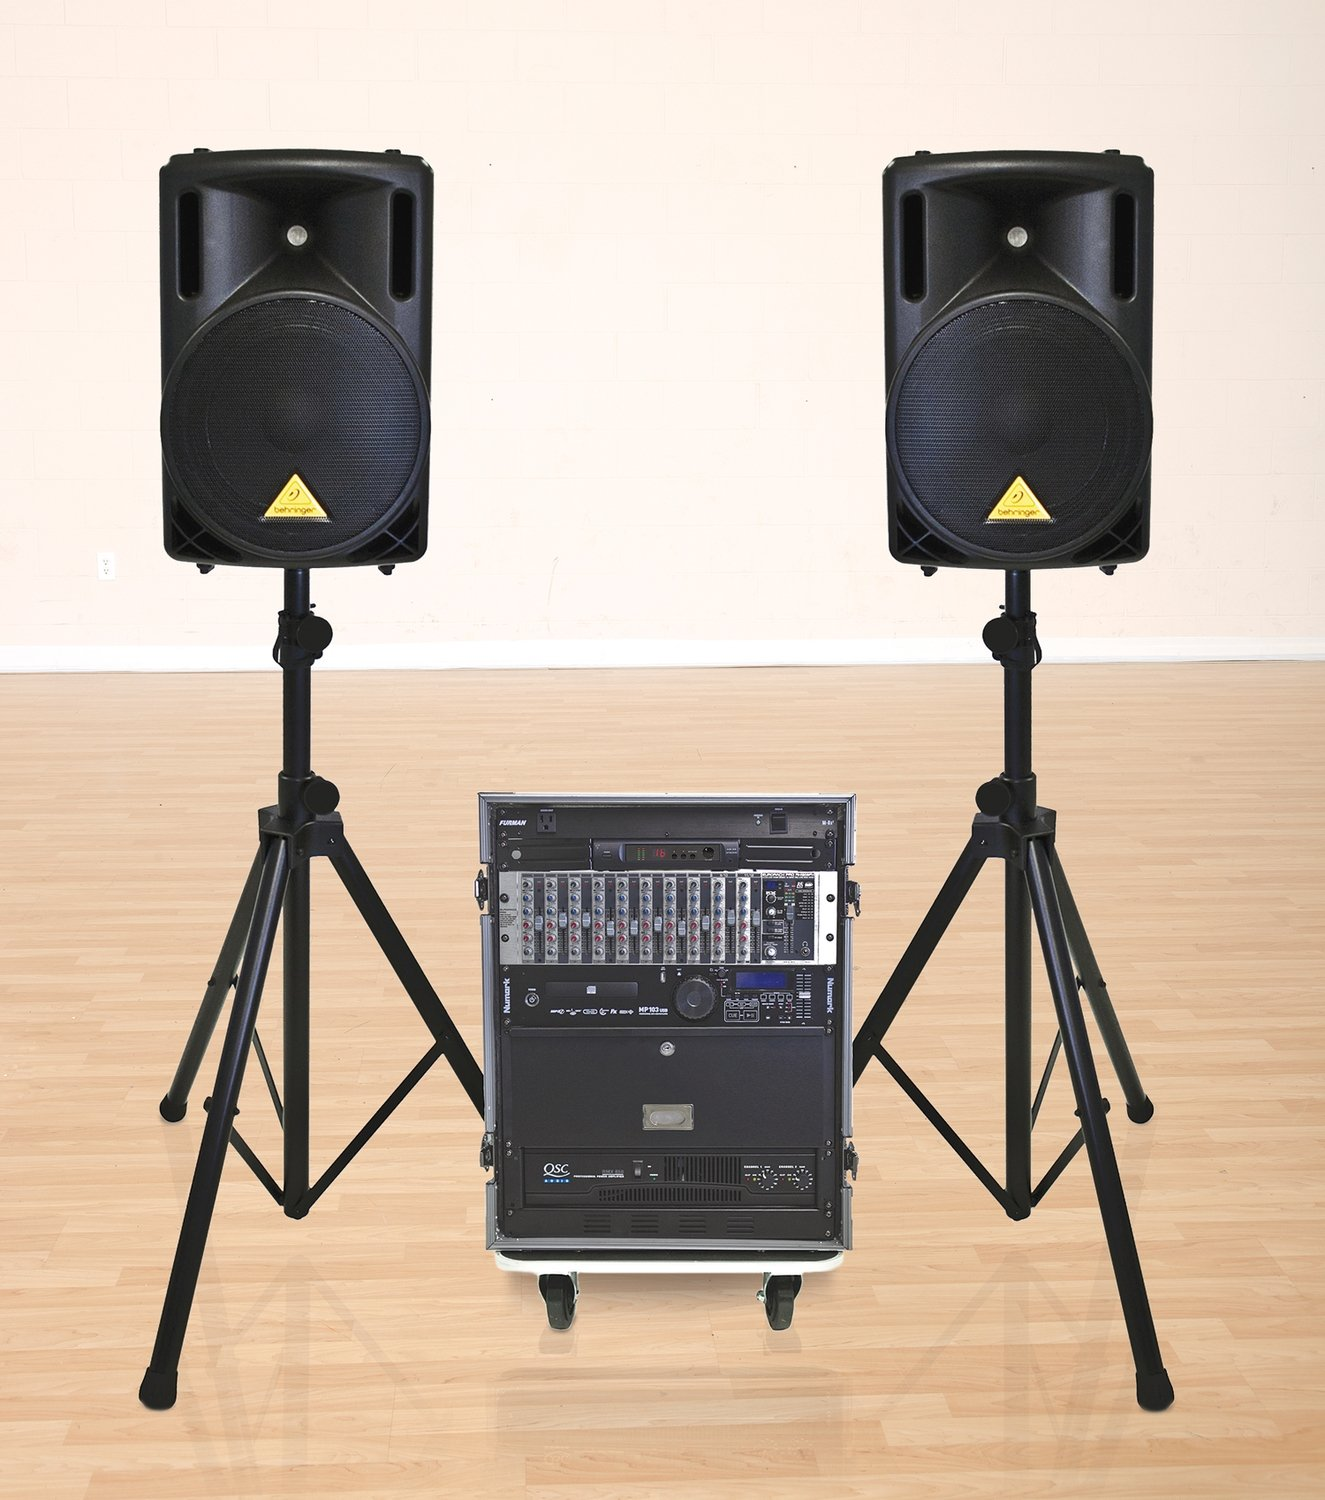 Gym PA system with audio tower